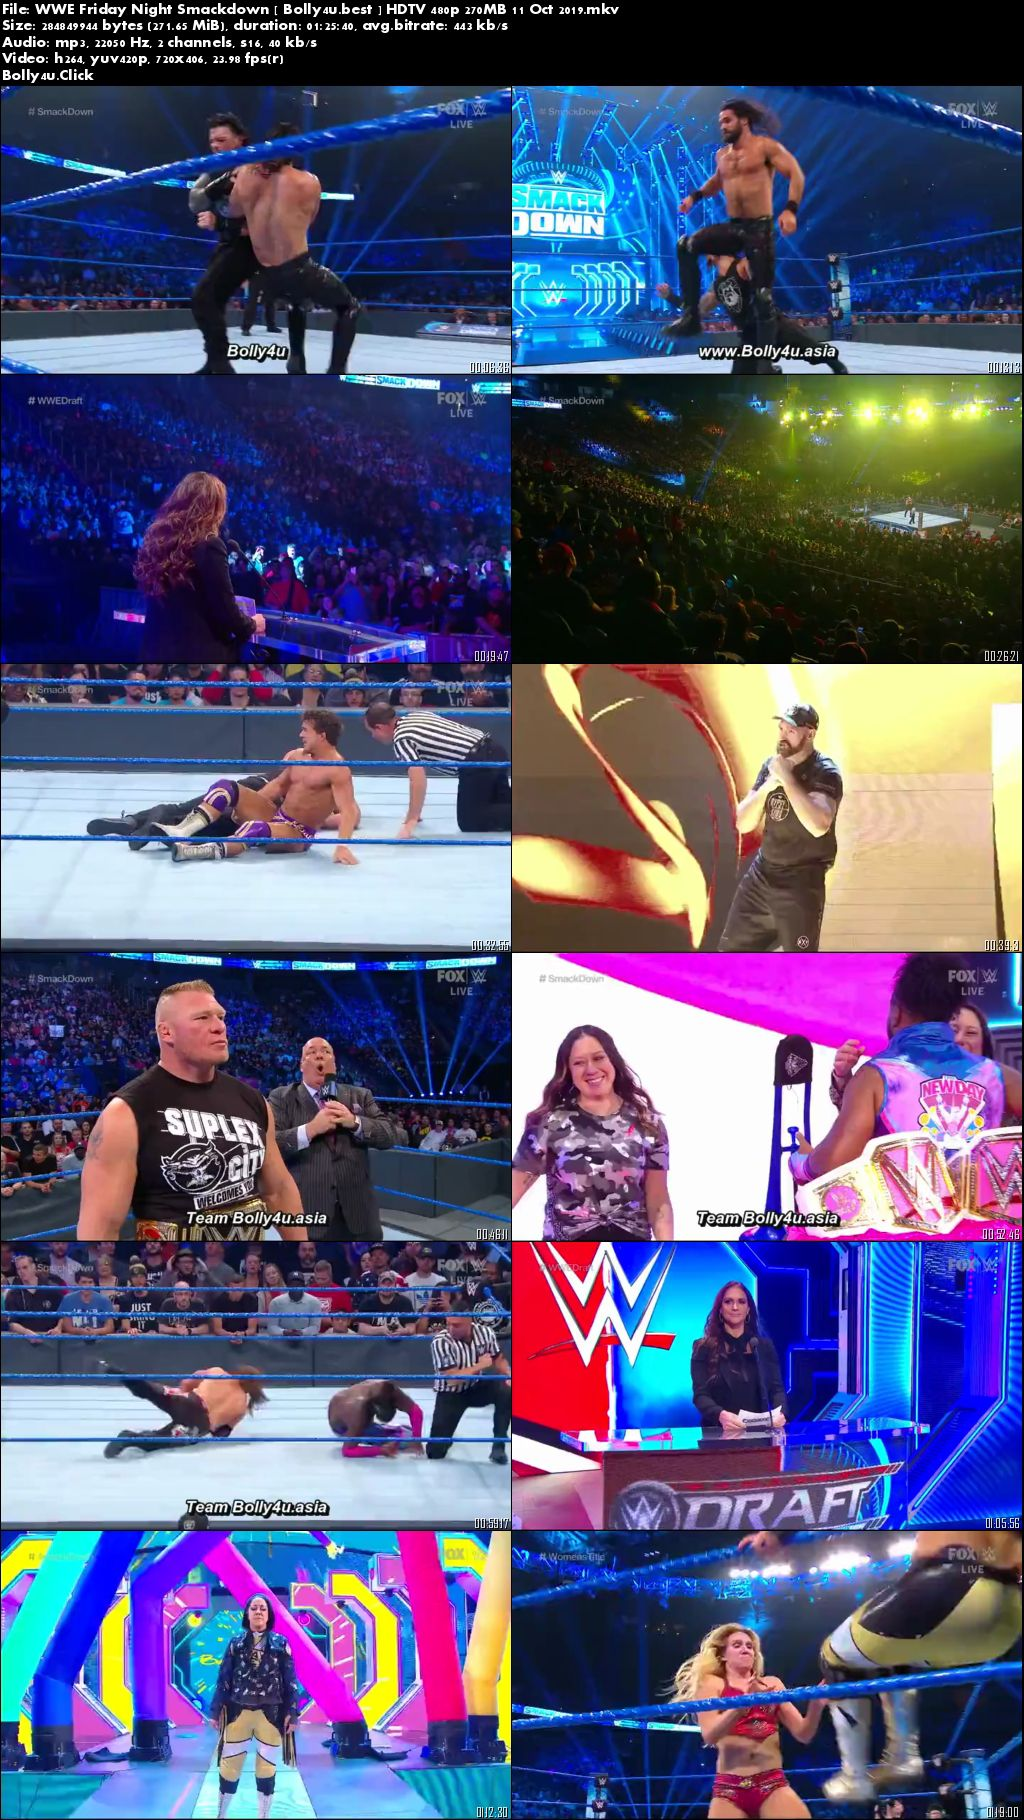 WWE Friday Night Smackdown HDTV 480p 270MB 11 Oct 2019 Download